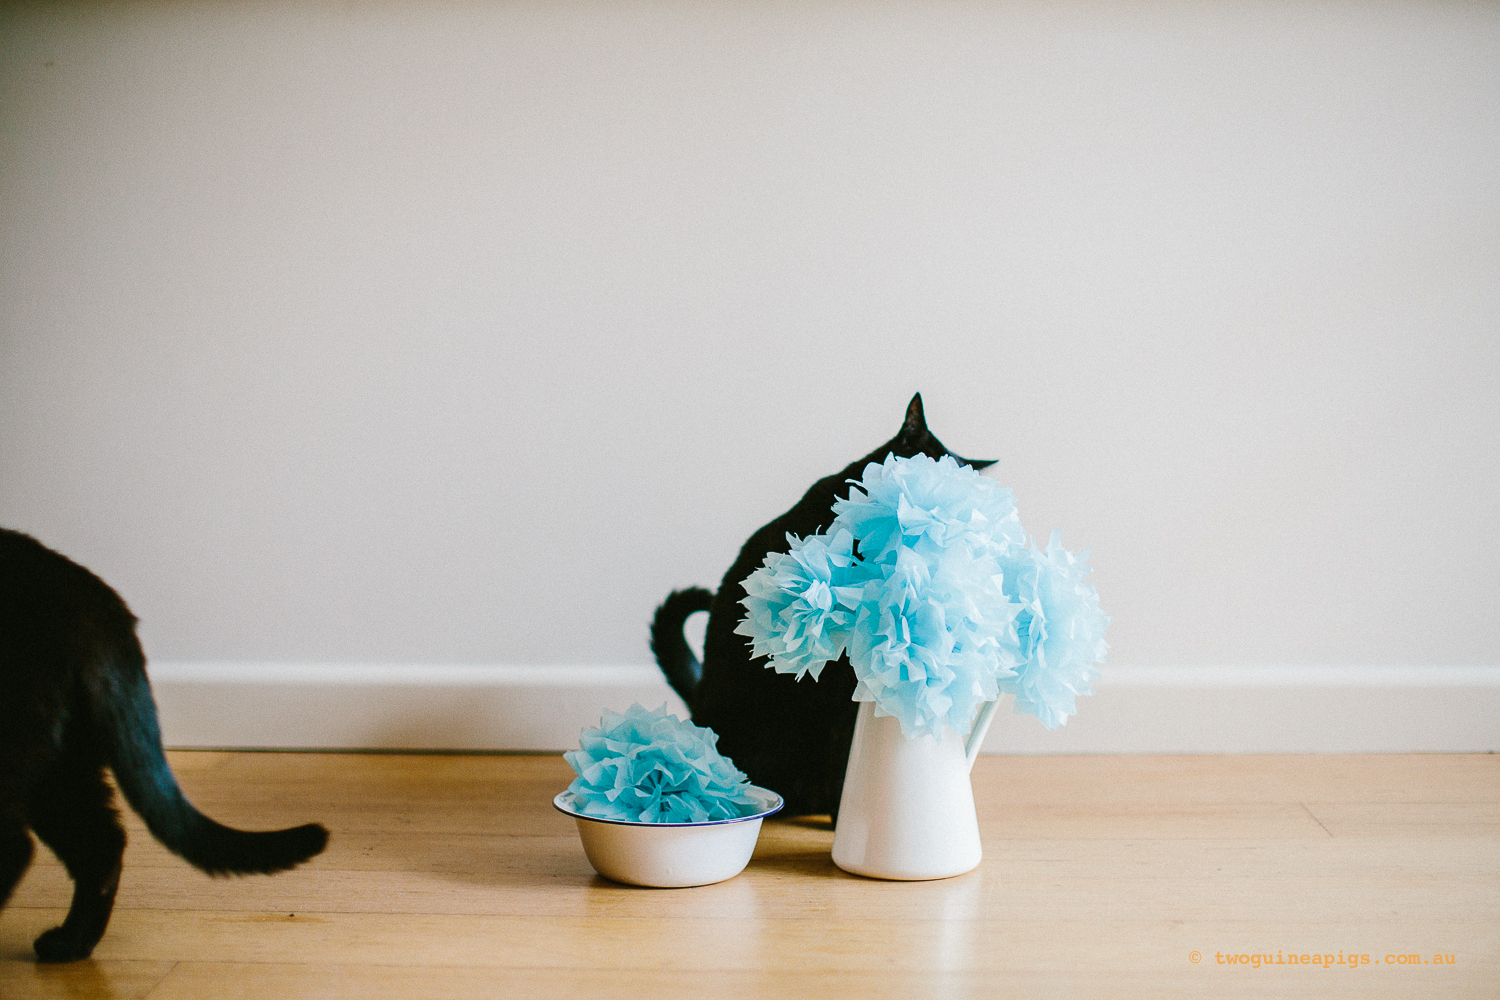 twoguineapigs_pet_photography_ruby_slipper_cat_floral_series_TEST_1500-30.jpg